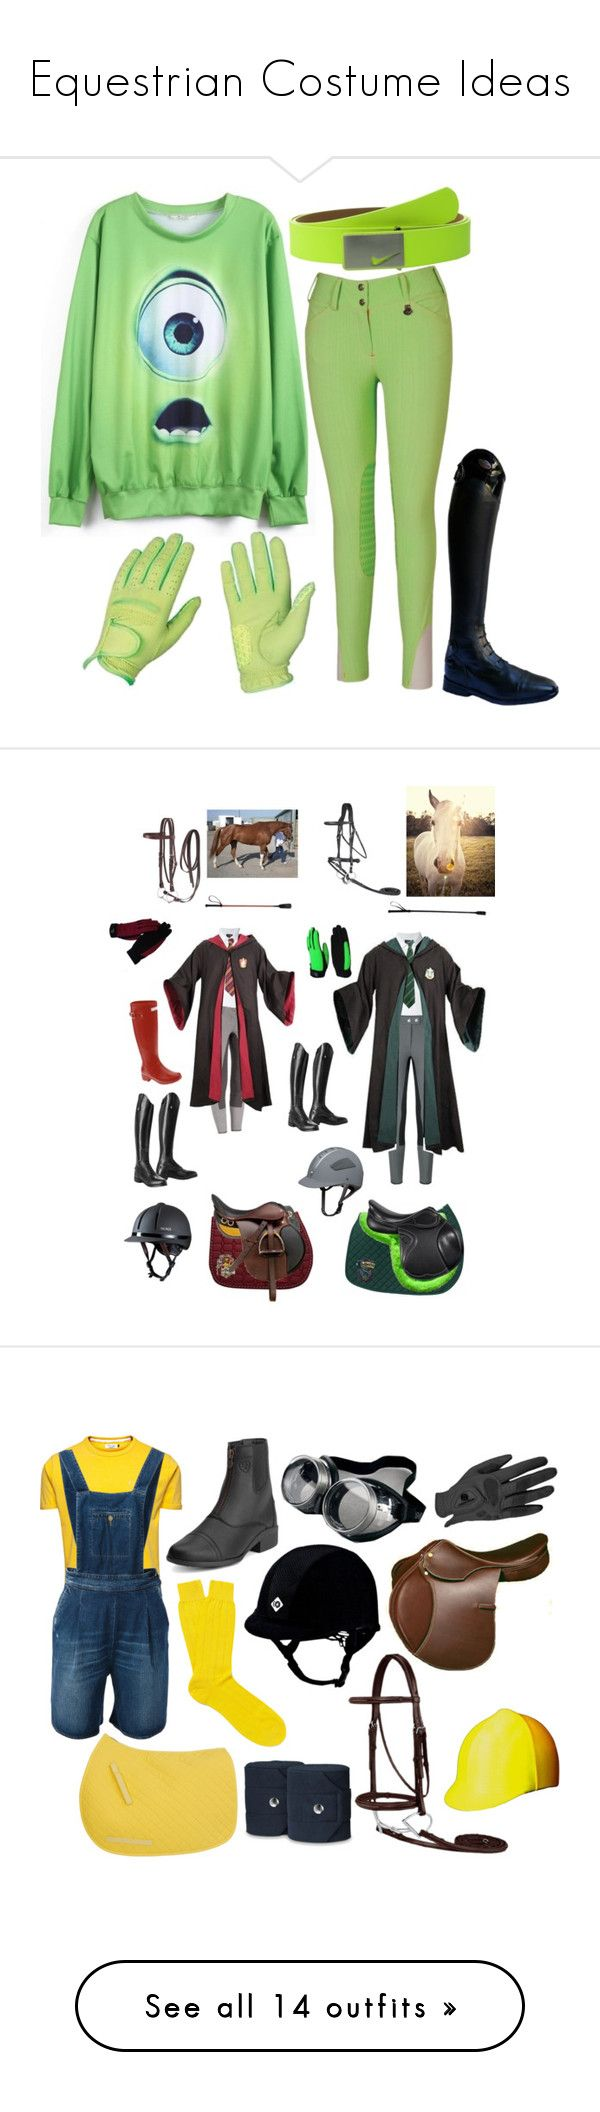 """""""Equestrian Costume Ideas"""" by equestrian-dreaming ❤ liked on Polyvore featuring Parlanti, NIKE, Armani Jeans, Hunter, Universal Lighting and Decor, Jack & Jones, (+) PEOPLE, Pantherella, Ariat and ASOS"""